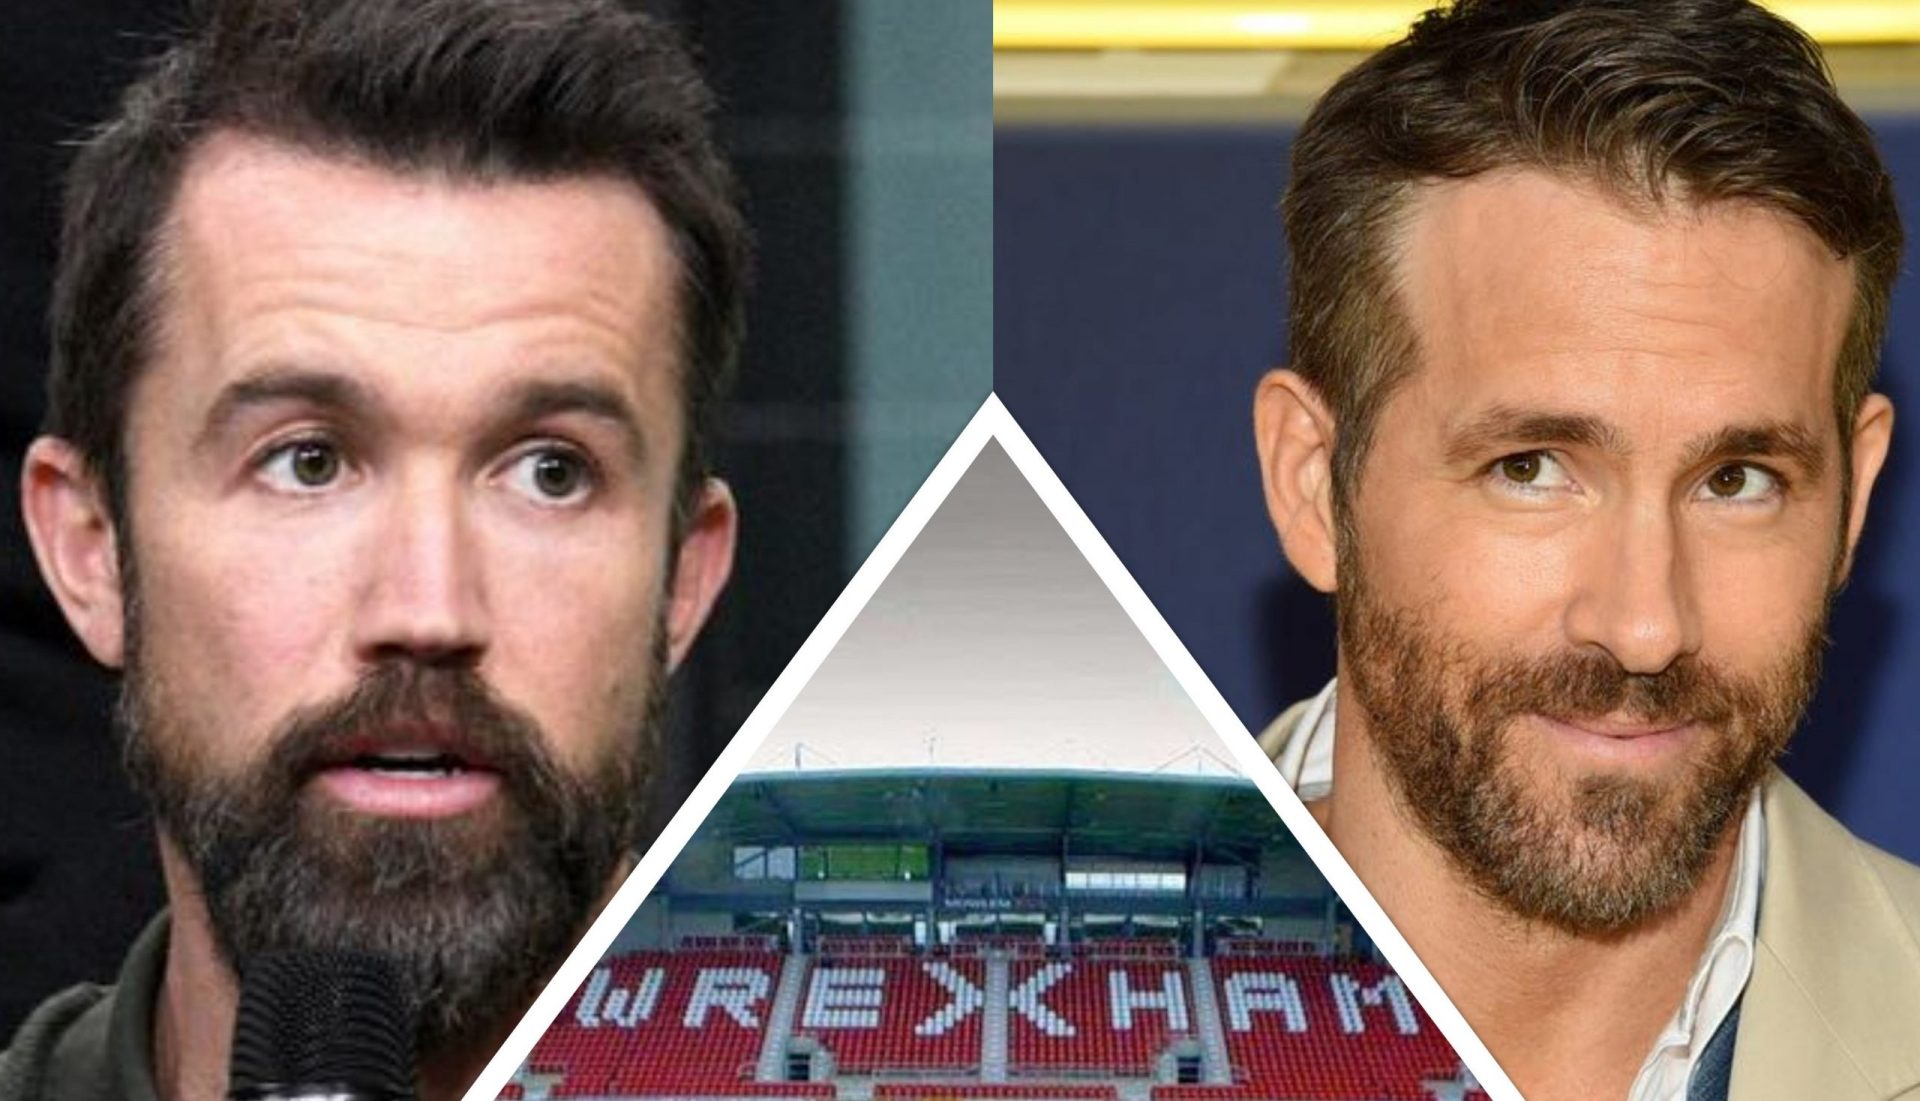 Hollywood goes Welsh: Ryan Reynolds and Rob McElhenney to buy stakes in Wrexham FC - THE SPORTS ROOM